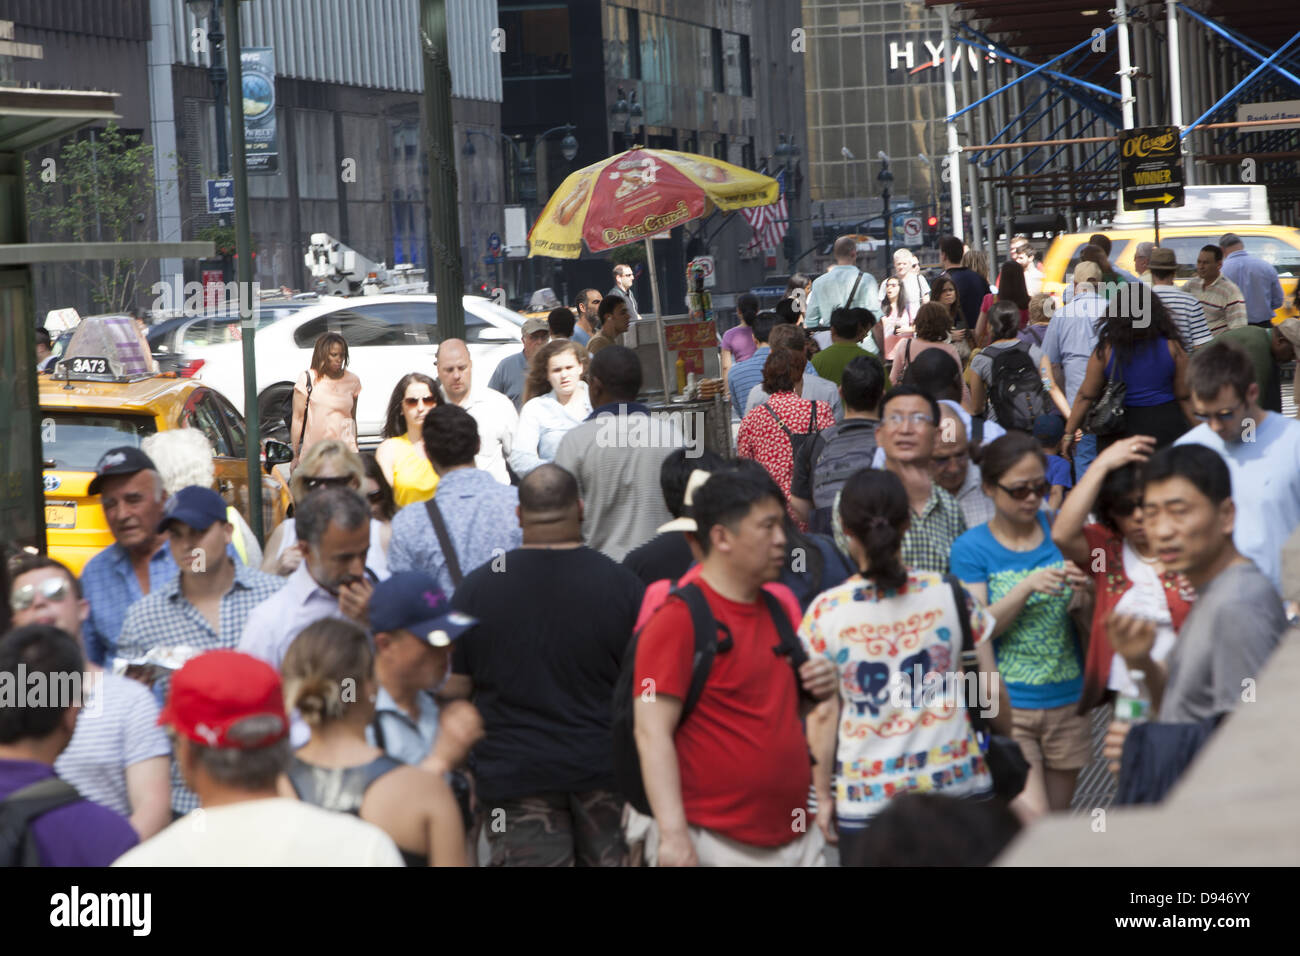 Crowds of tourists walk along 42nd St. by the NY Public library on a warm weekend in May. NYC - Stock Image